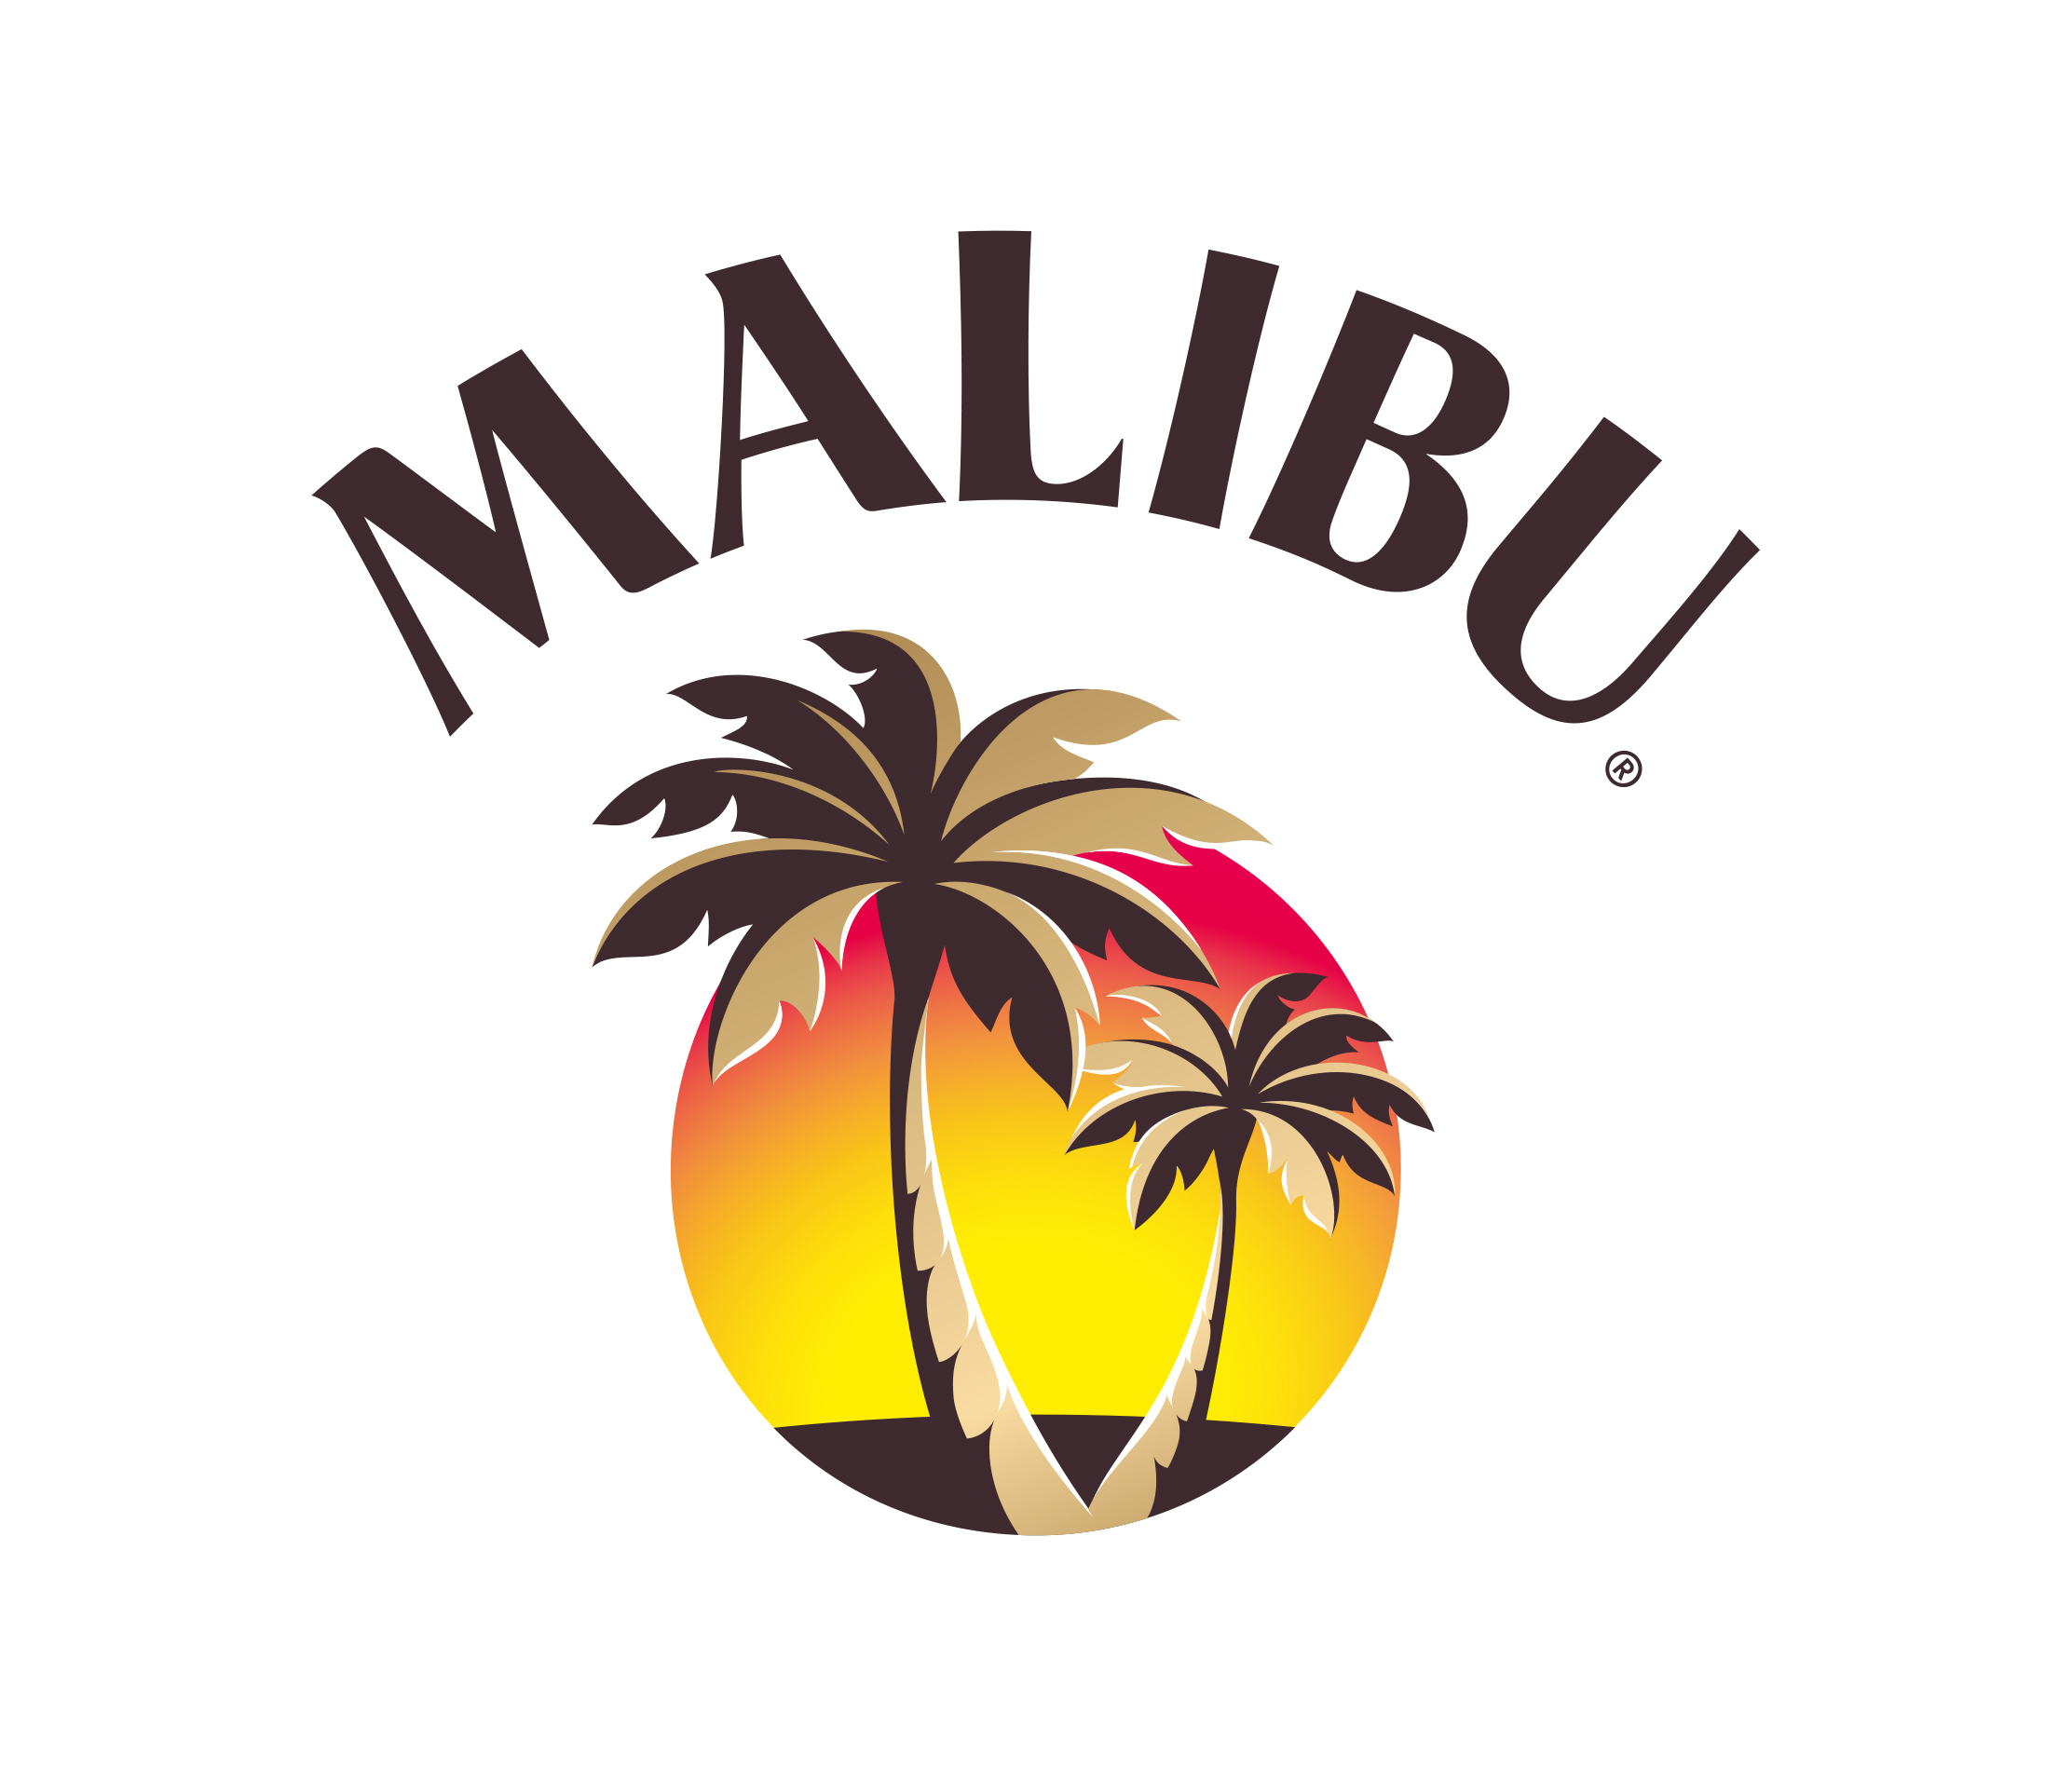 Malibu_Redesign_Logo_Visuals.jpg